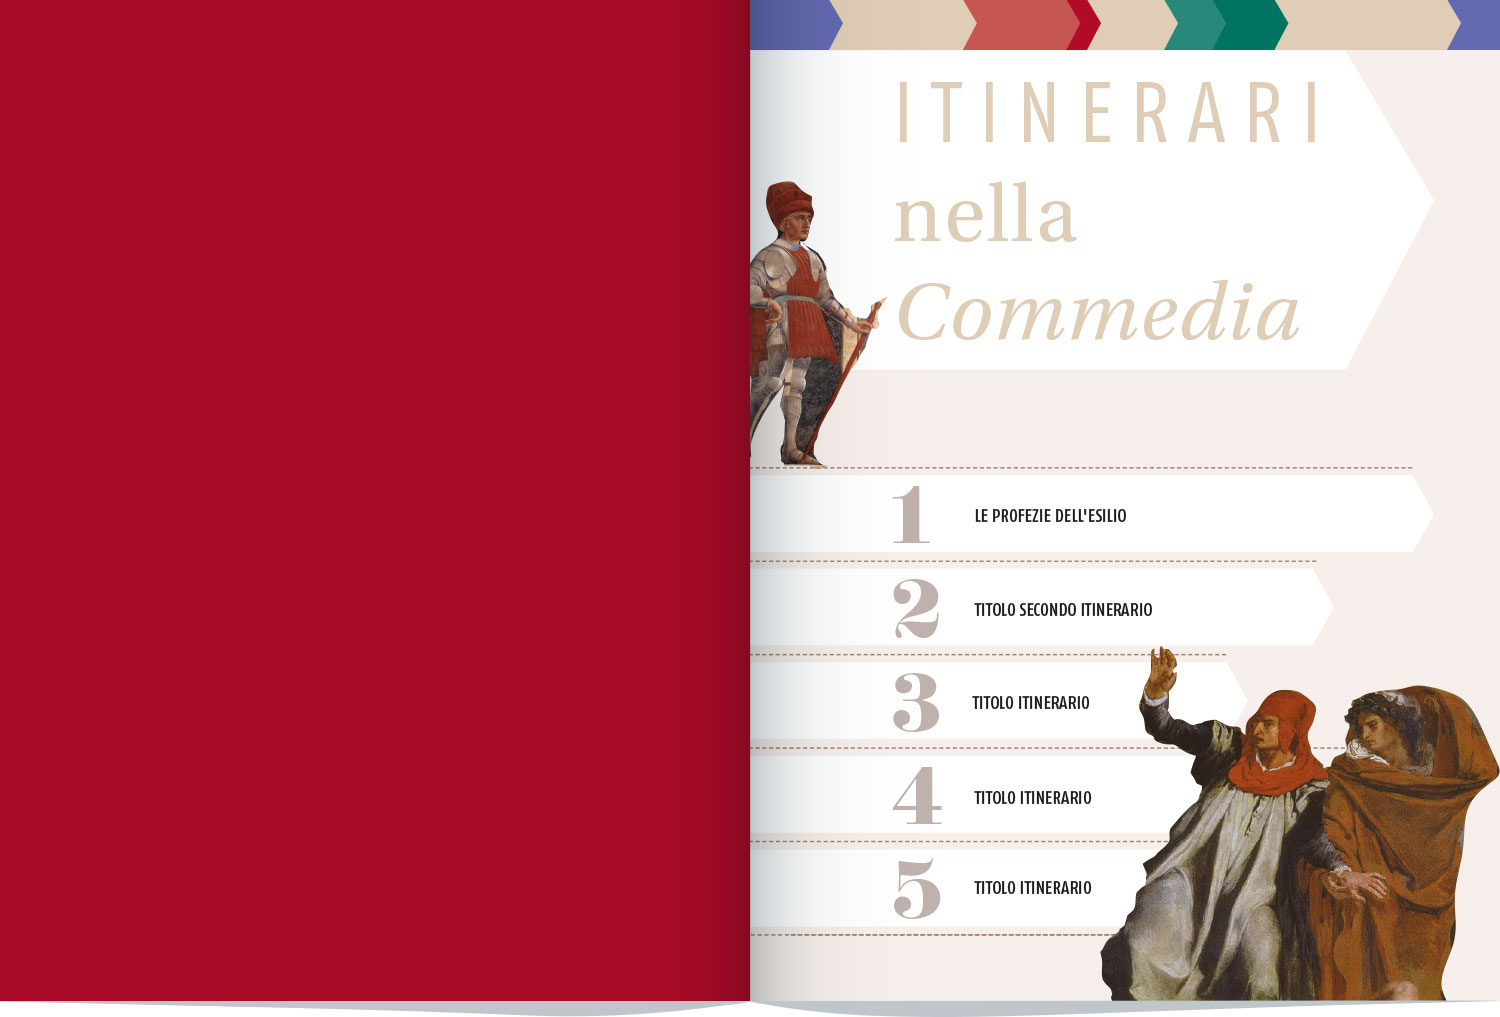 008-Plum-Divina-Commedia-Mondadori-Education-